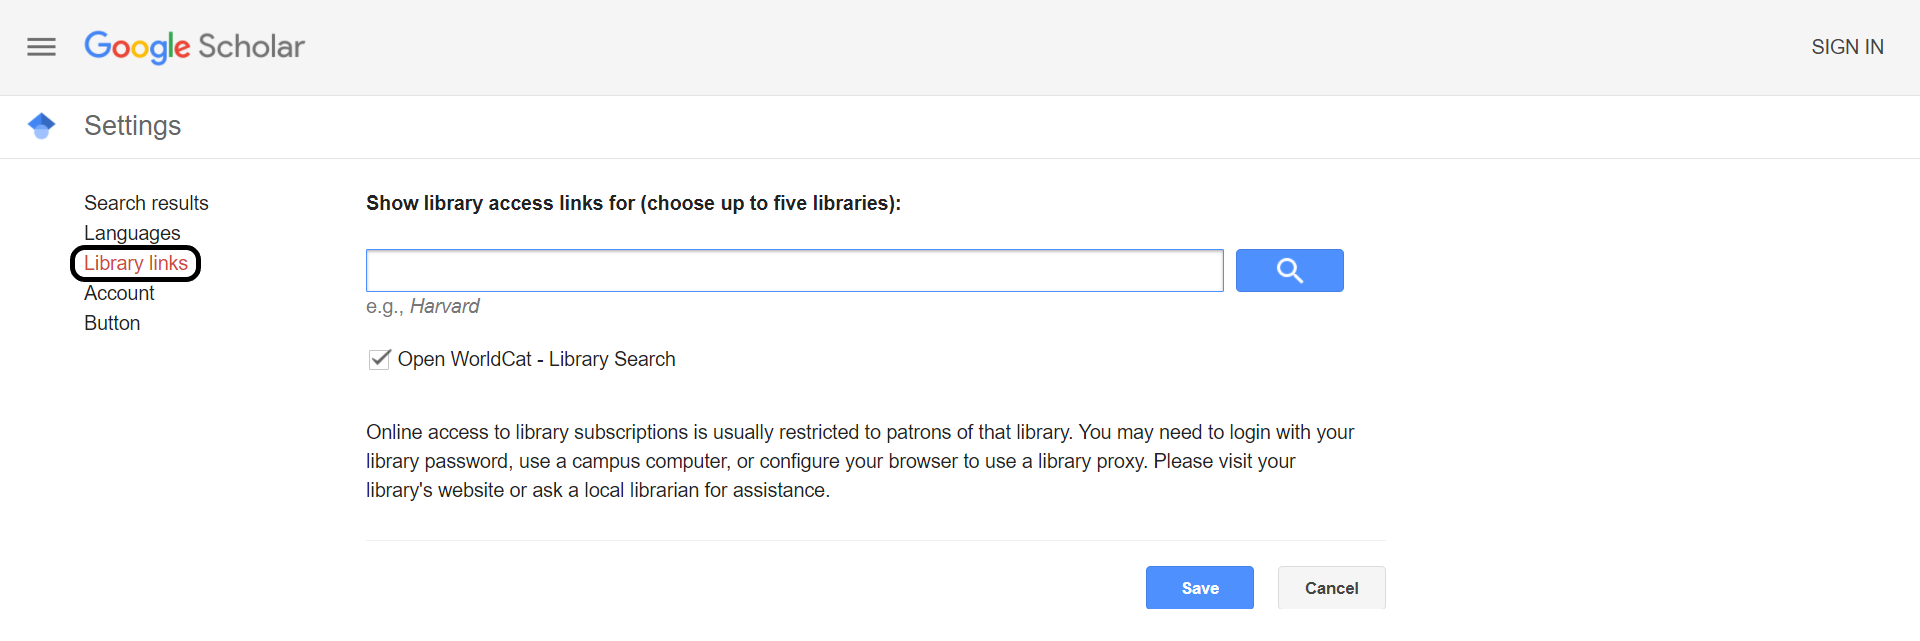 Google Scholar's settings menu with the library links option highlighted